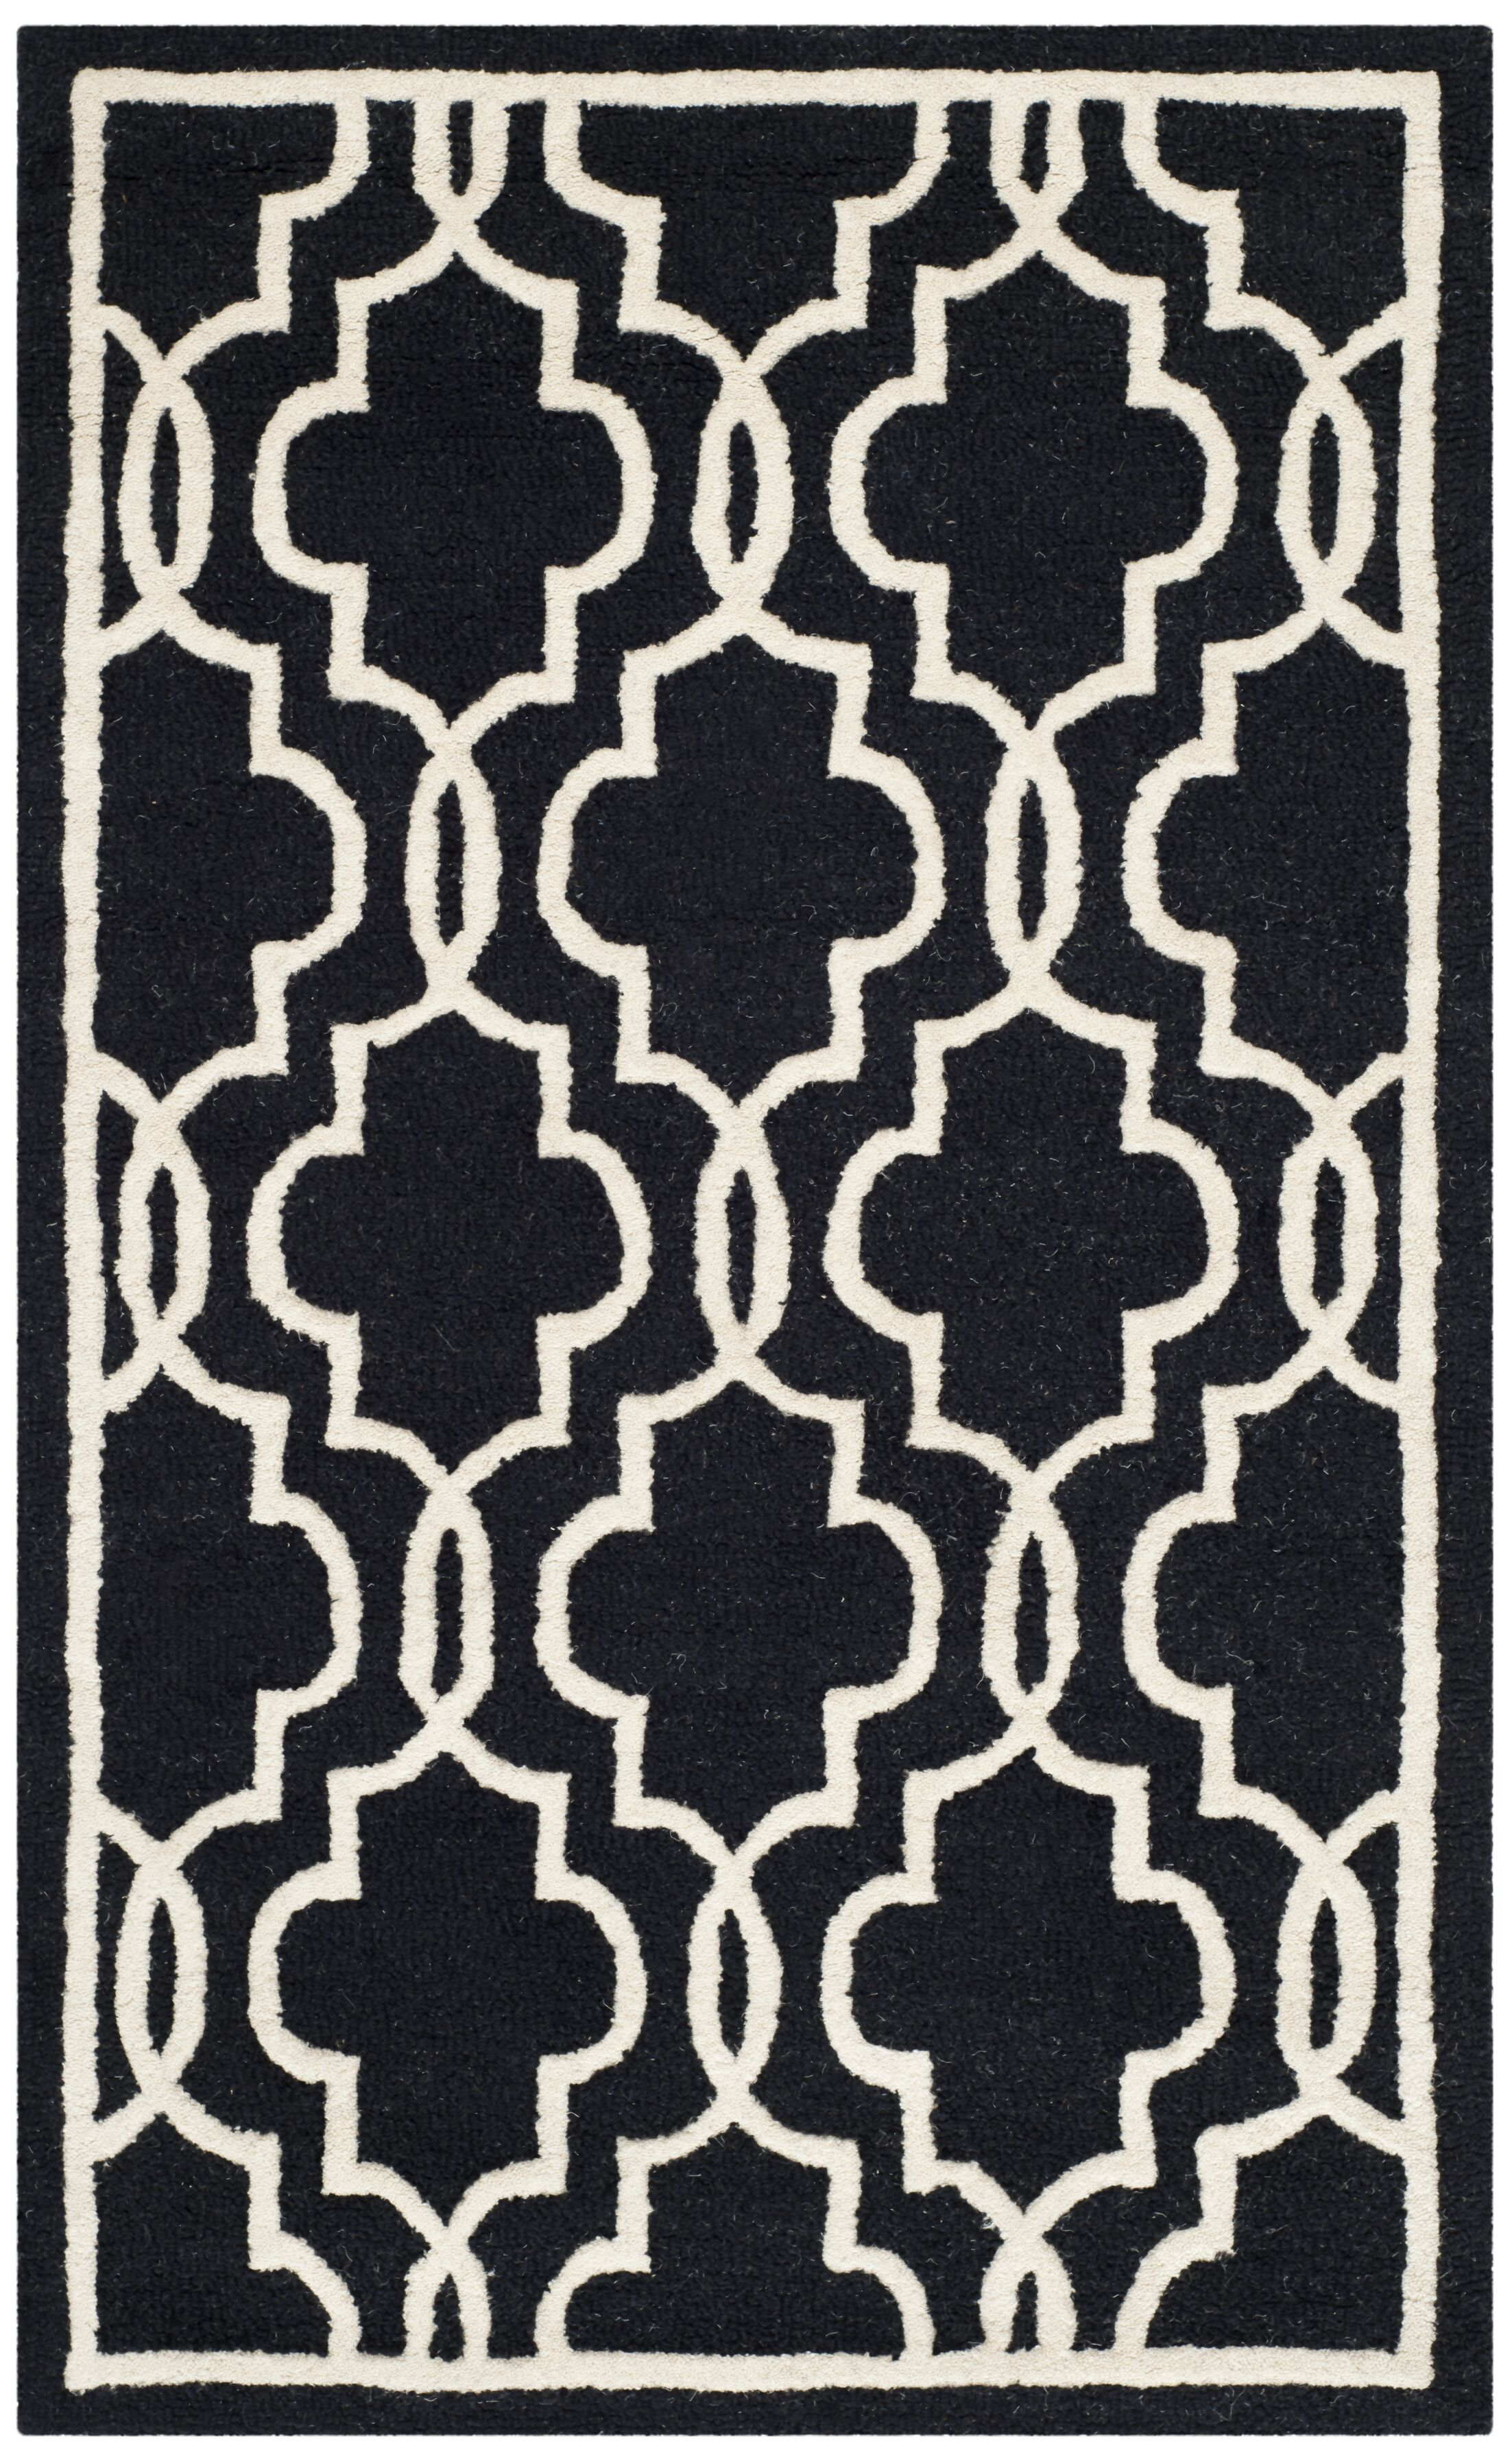 Martins Hand-Tufted Wool Black Area Rug Rug Size: Rectangle 4' x 6'